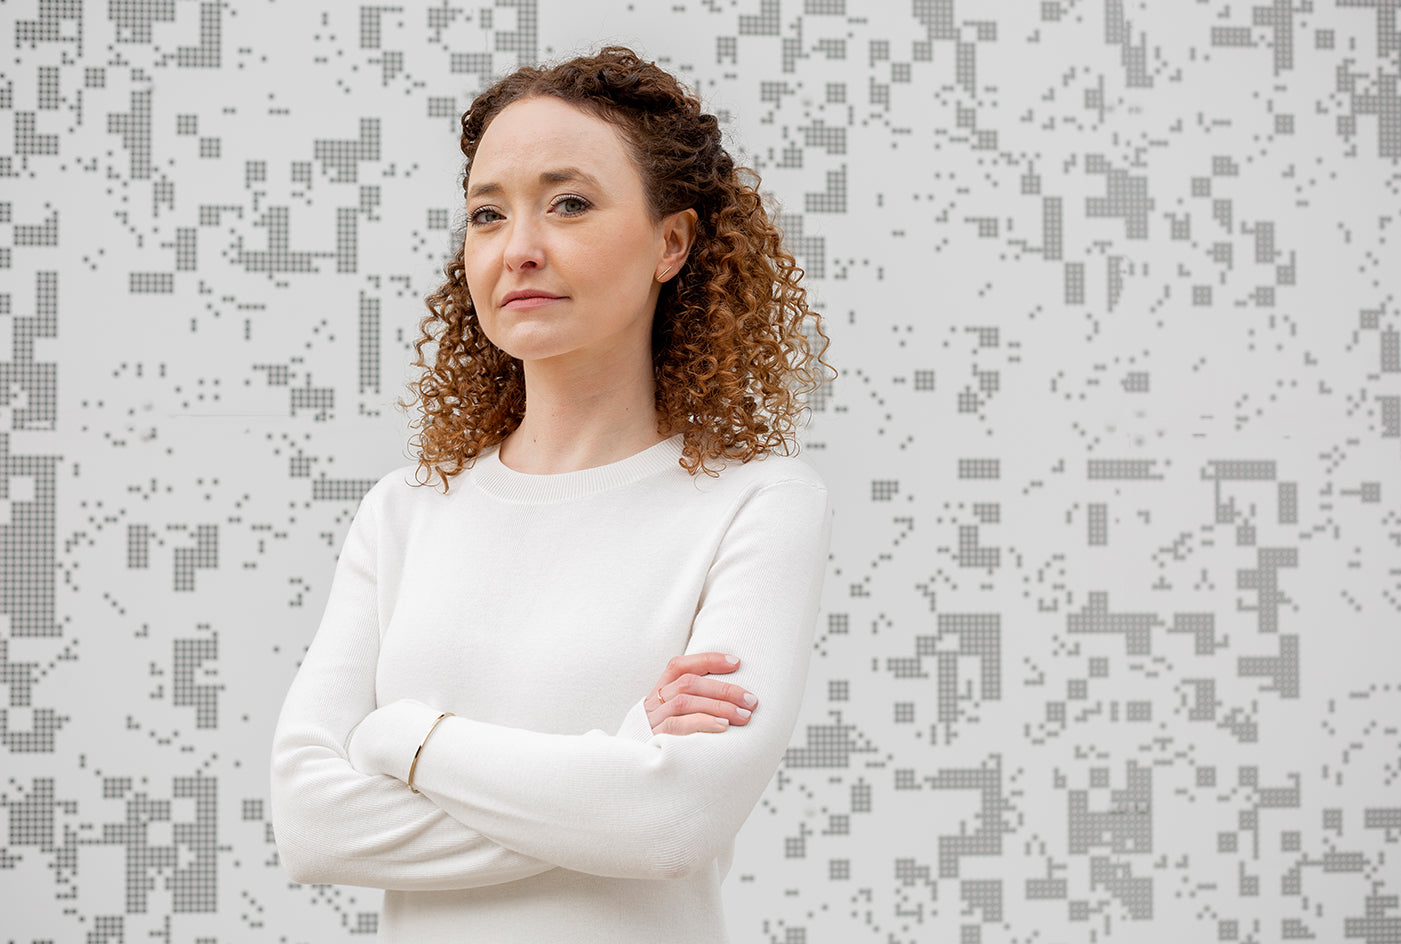 Sarah Mirth CEO and Co-Founder of Artifox